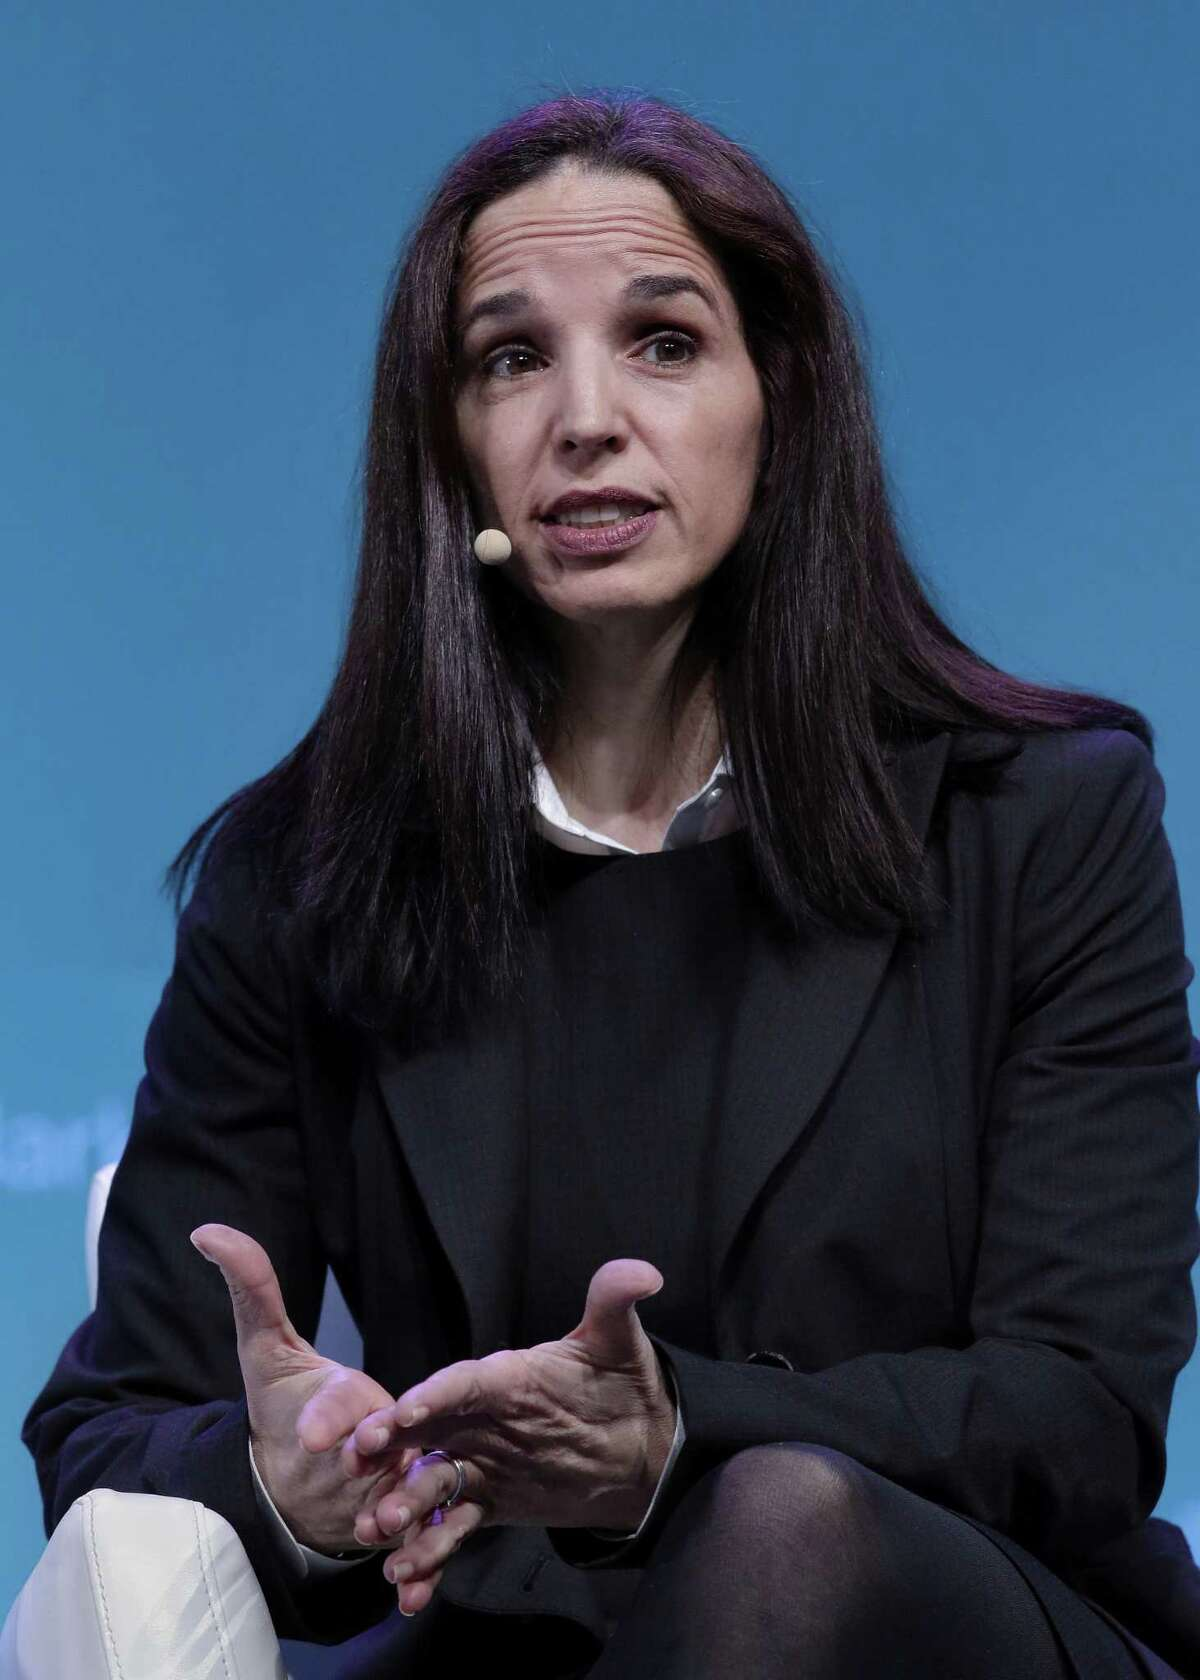 Luisa Palacios, Chairwoman of Citgo Petroleum Corp. comments during a panel discussion titled